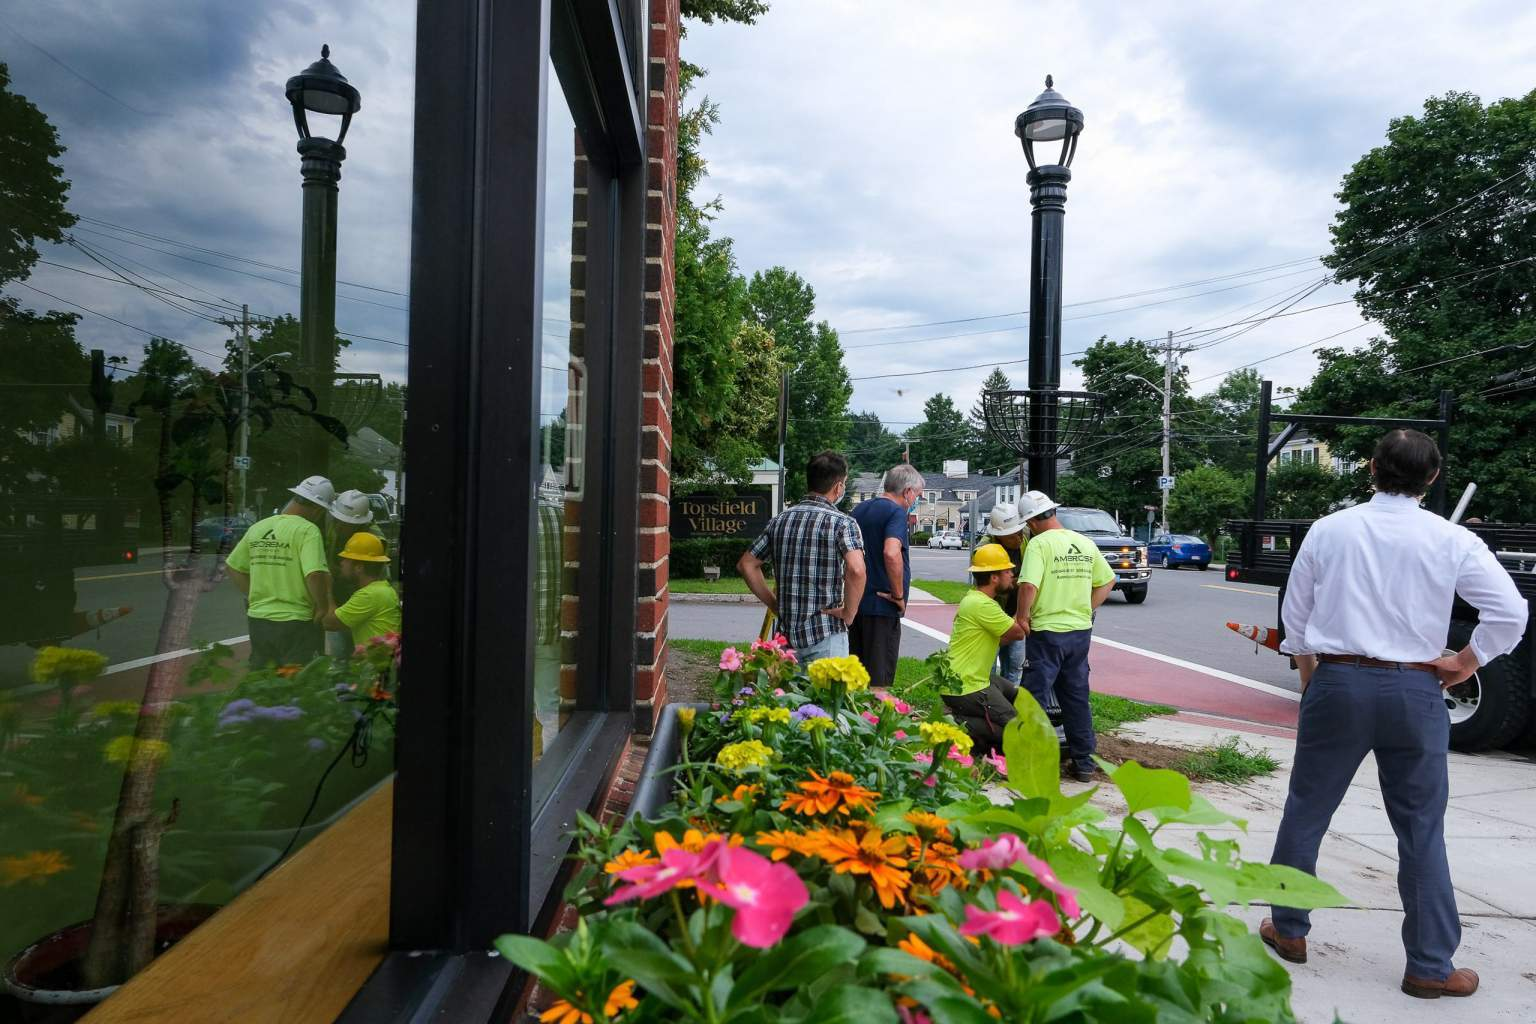 Soluxio solar poles with a traditional look in the city center of Topsfield, MA